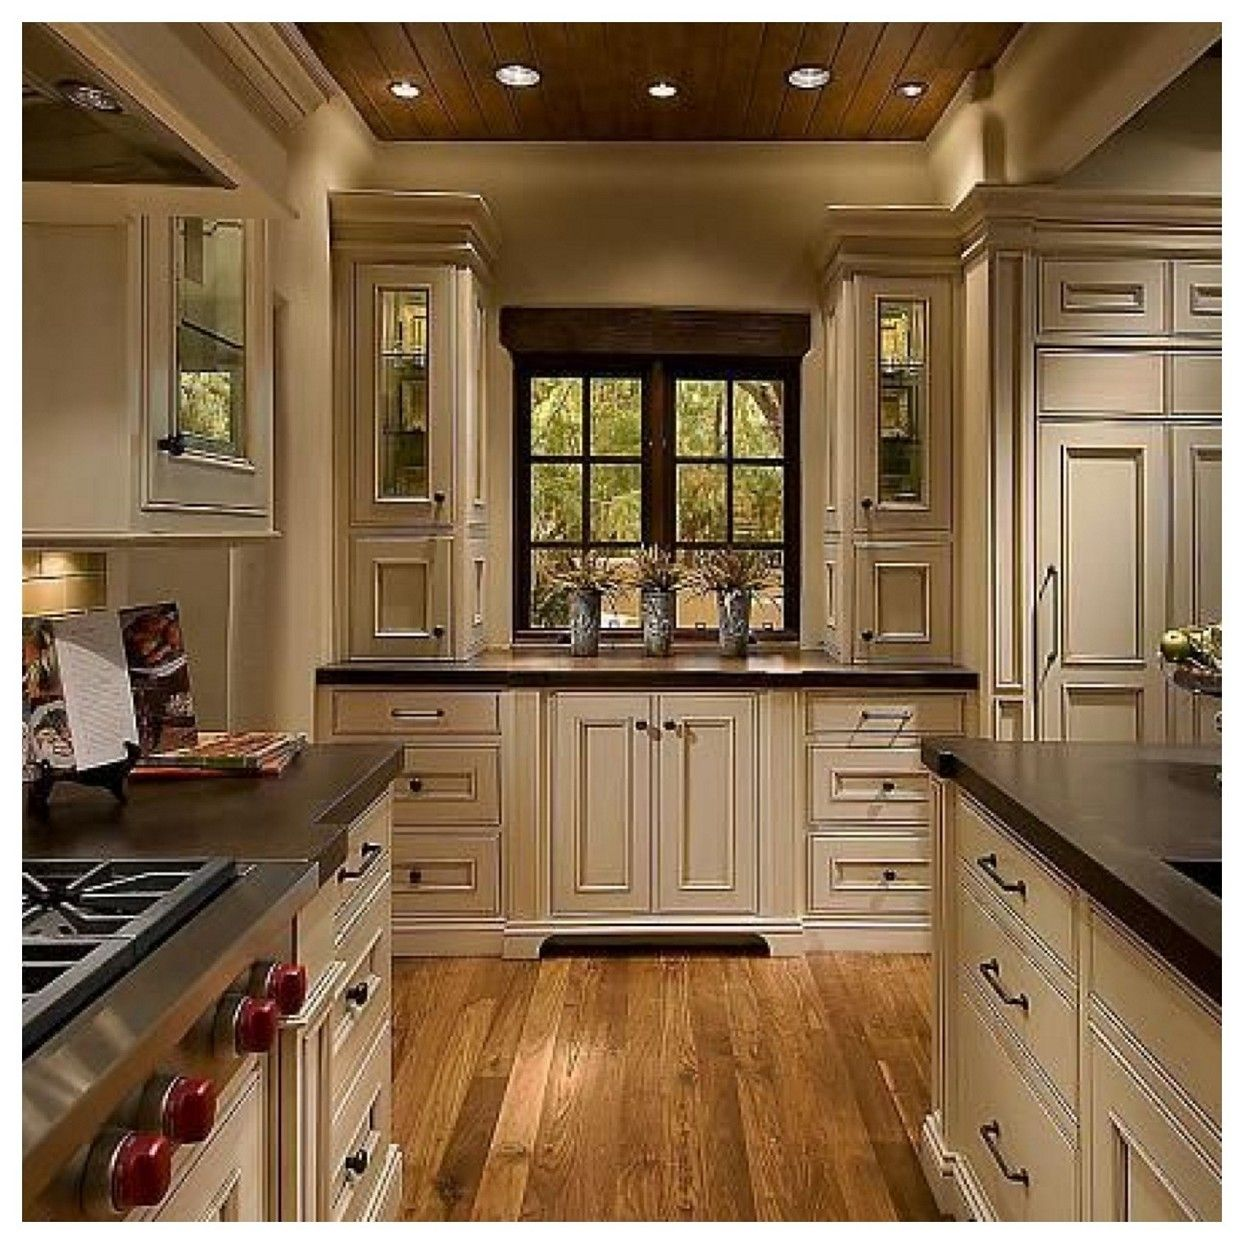 Cream color kitchen cabinets with dark floors kitchen cabinets